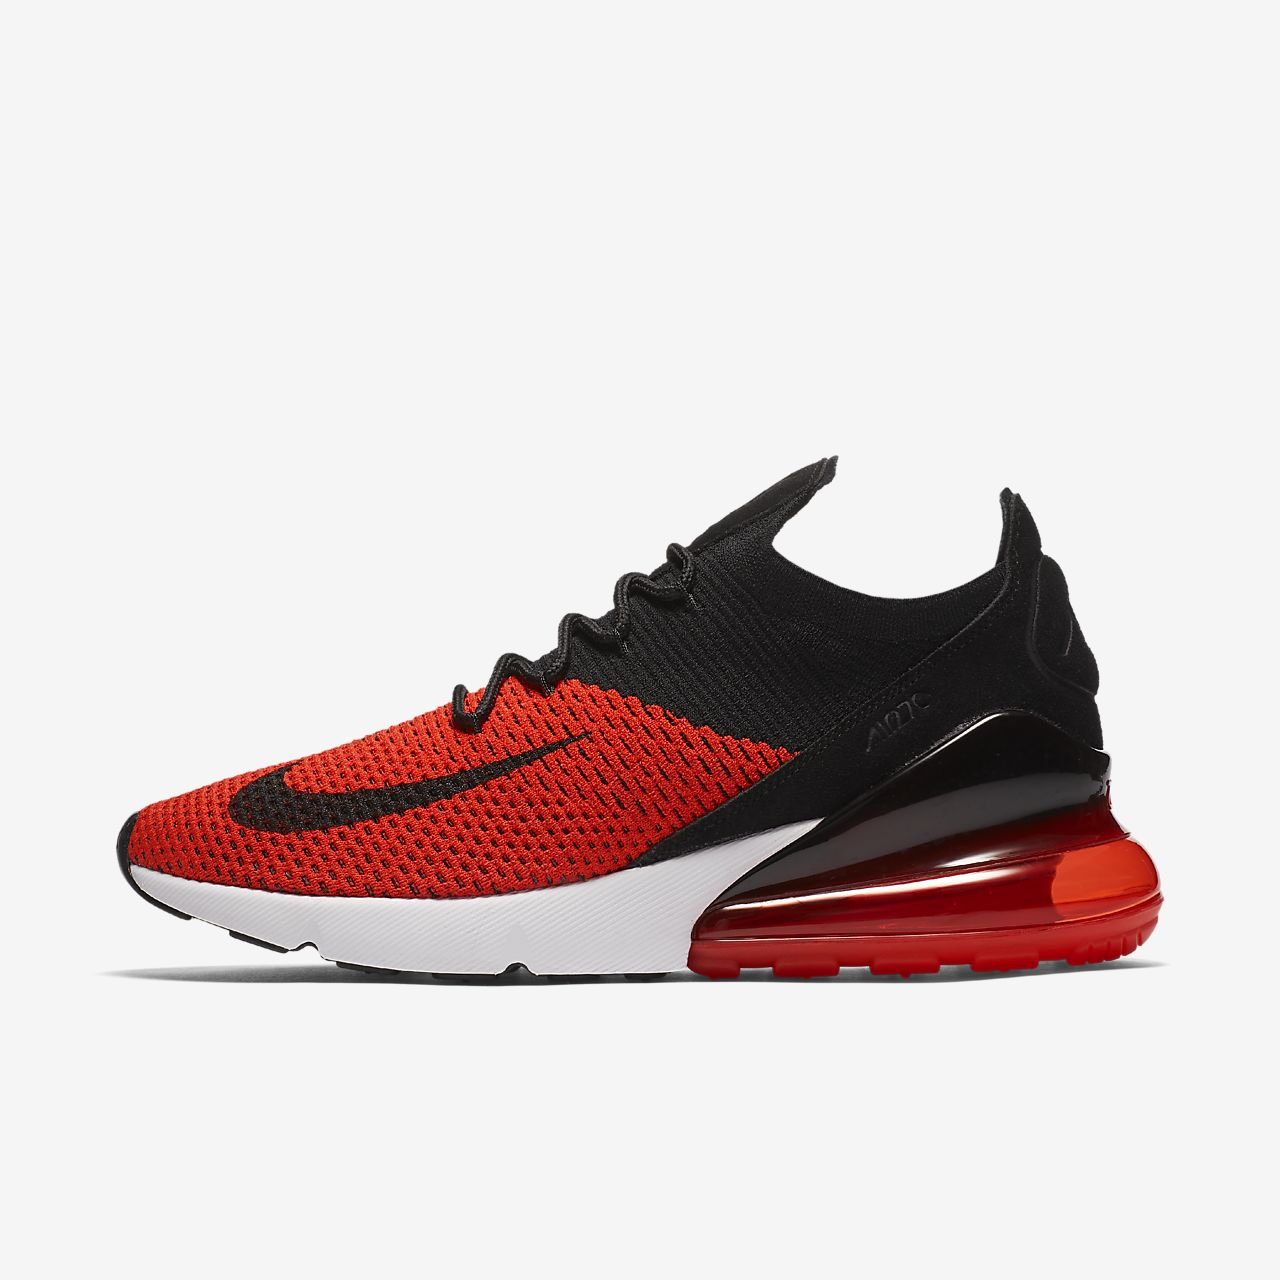 7175259d9e2 Nike Air Max 270 Flyknit Men s Shoe. Nike.com